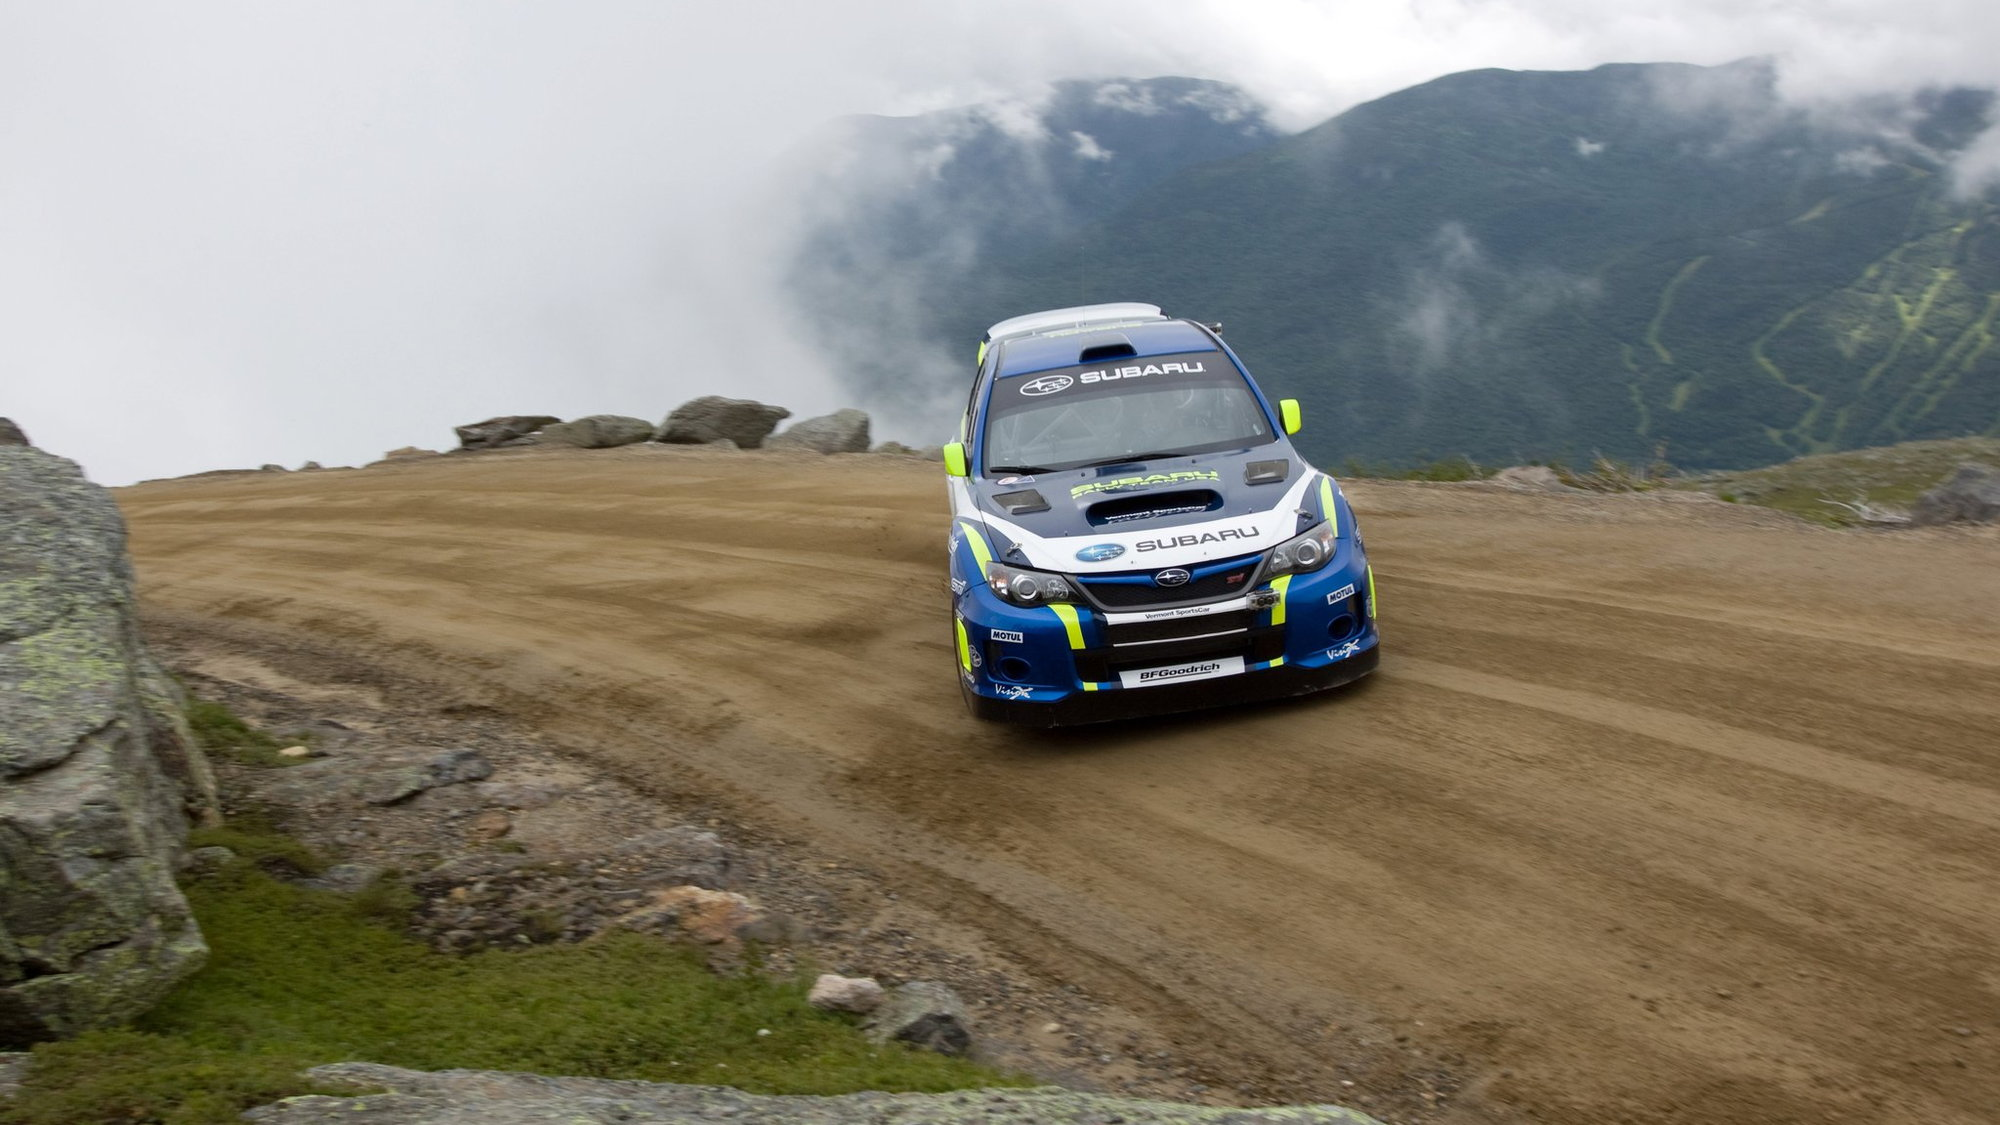 David Higgins drives a Subaru WRX to new Mt. Washington record